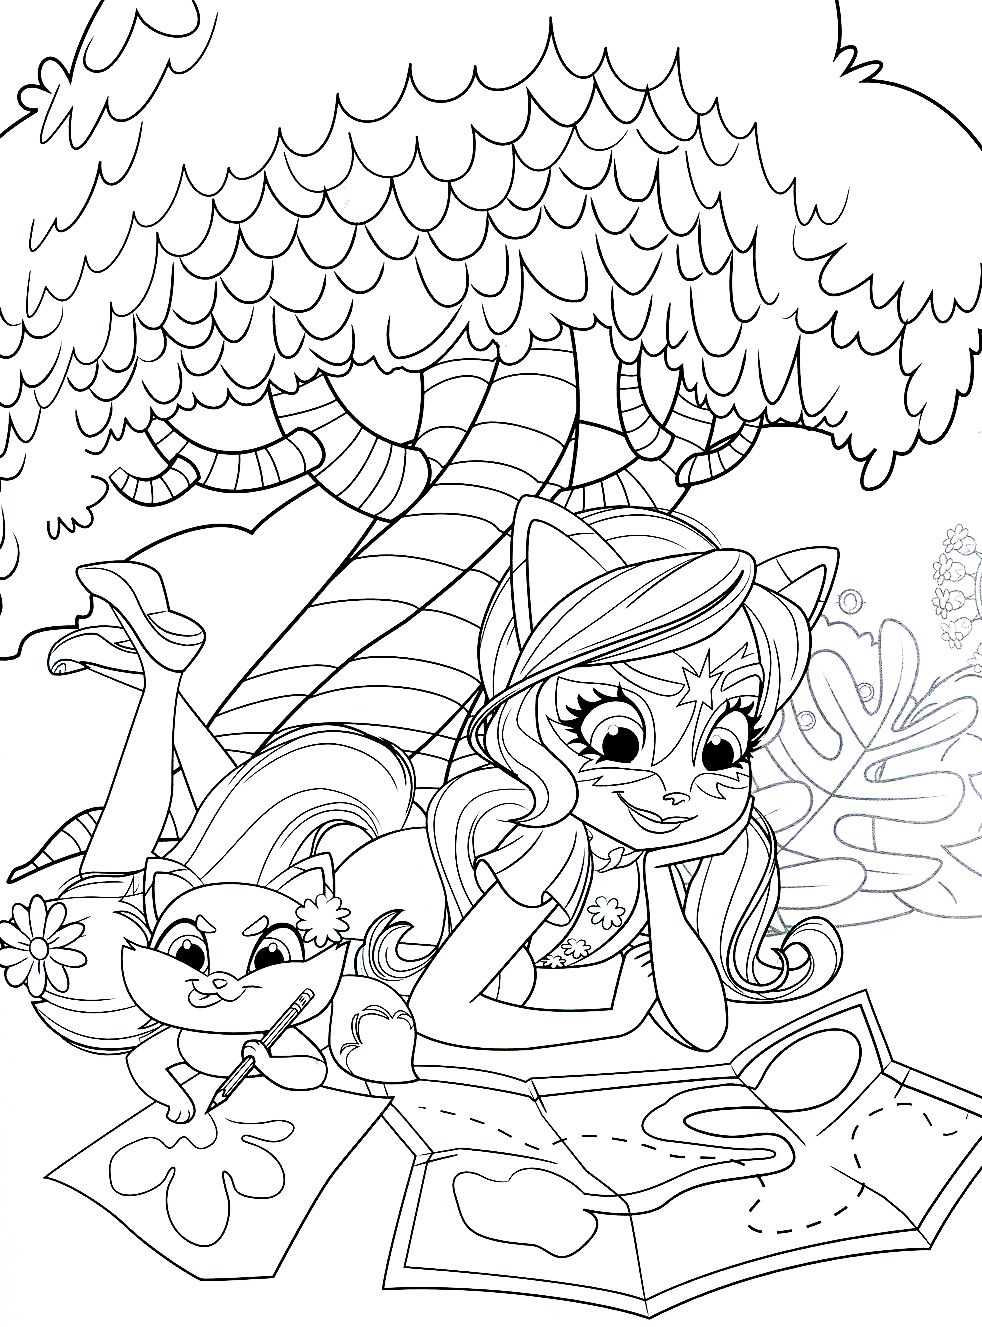 Click To Close Image Click And Hold To Move Cartoon Coloring Pages Cute Coloring Pages Free Coloring Pages